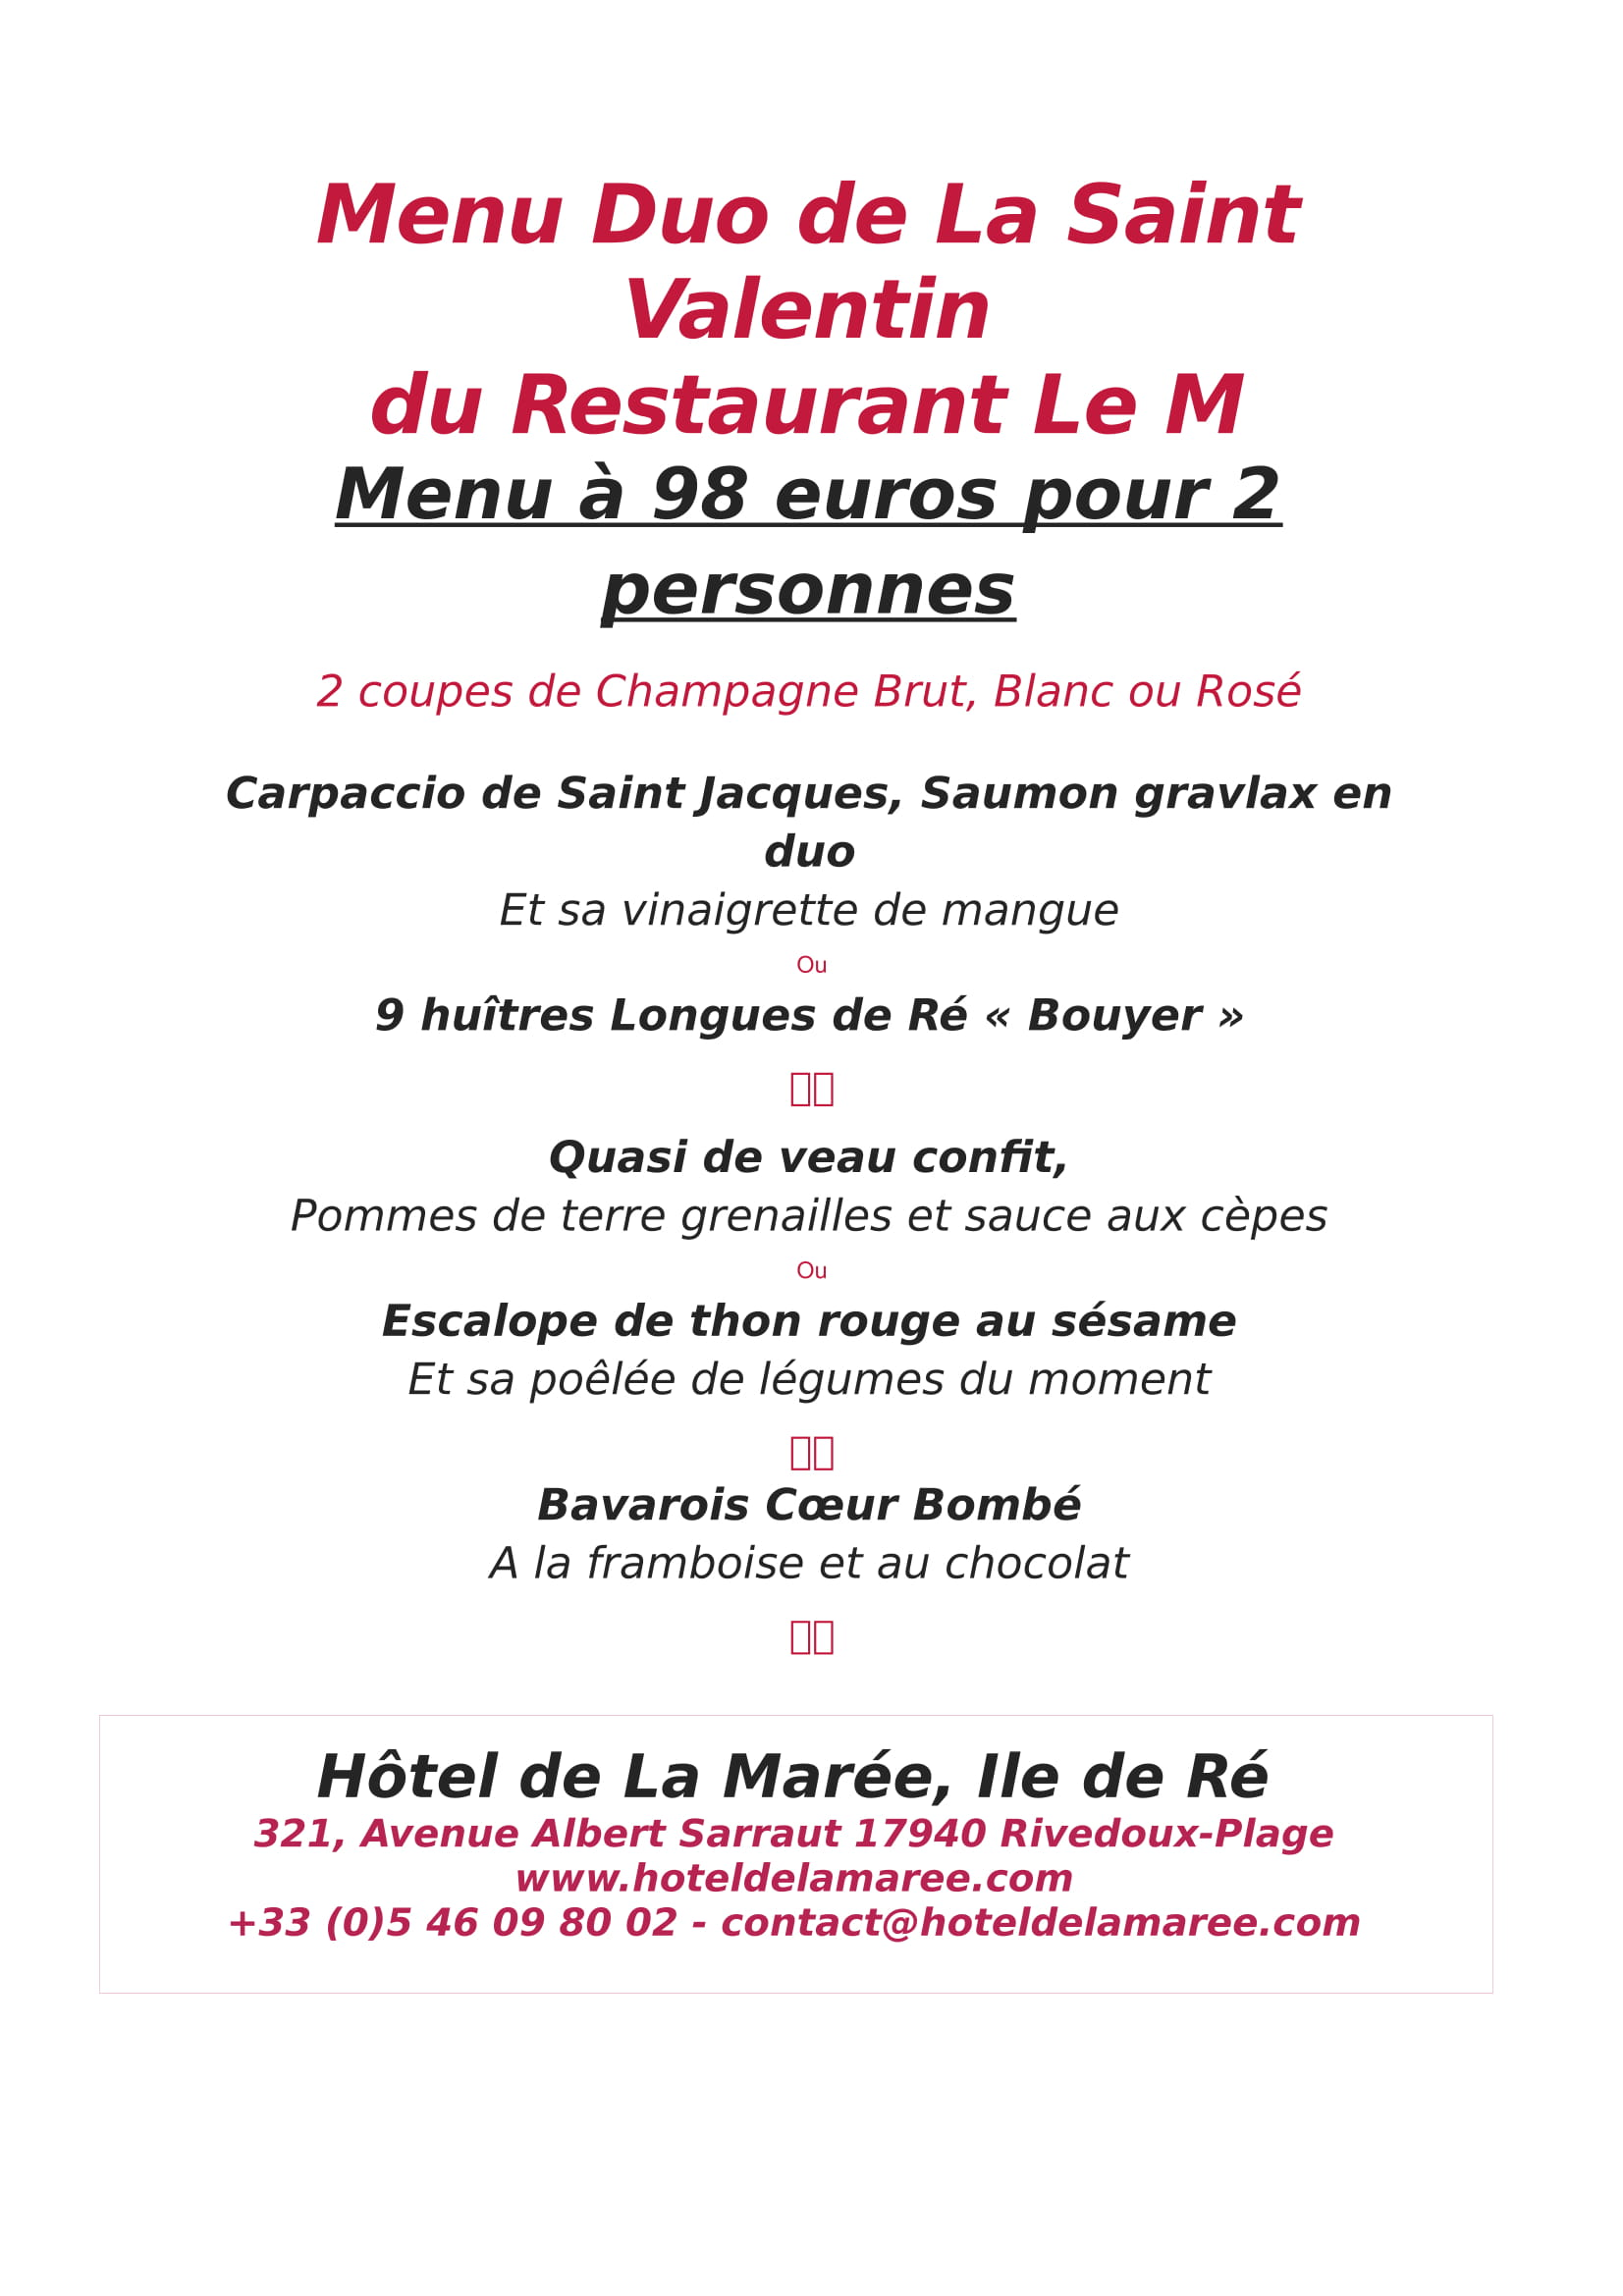 Menu Duo de La Saint Valentin